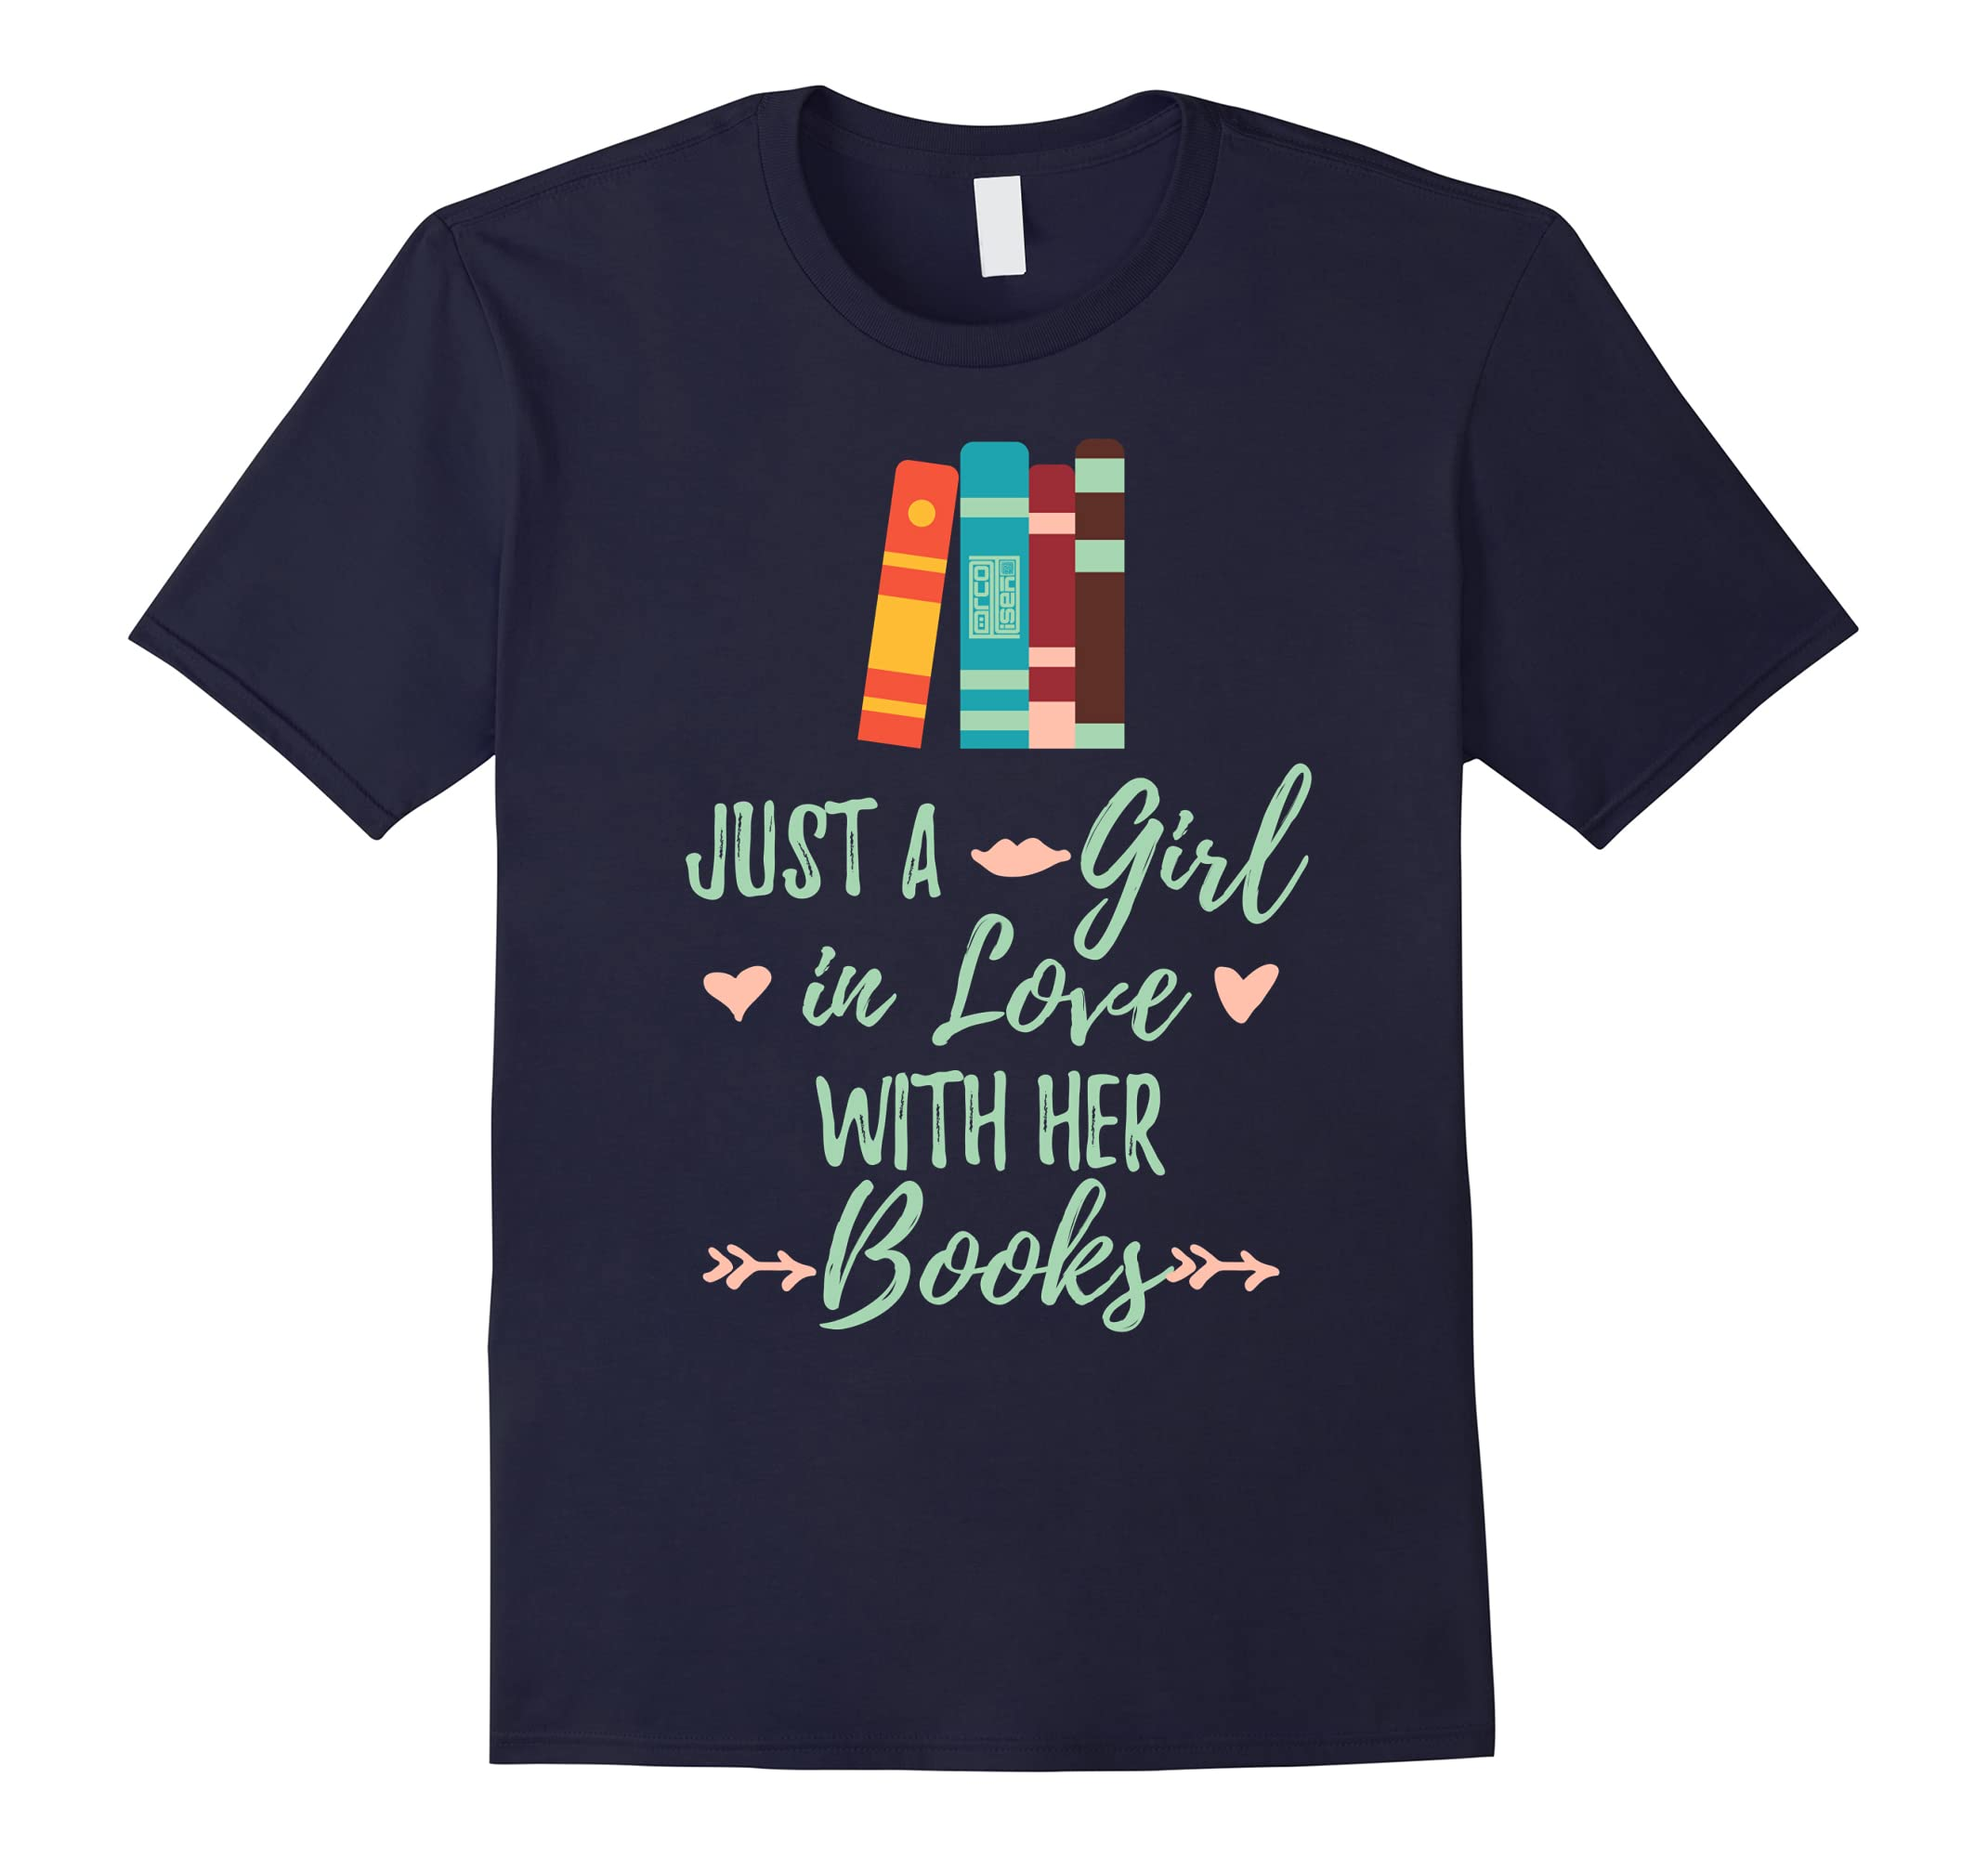 A Girl in Love With Her Books Bookworm Book Lover T-shirt-ah my shirt one gift